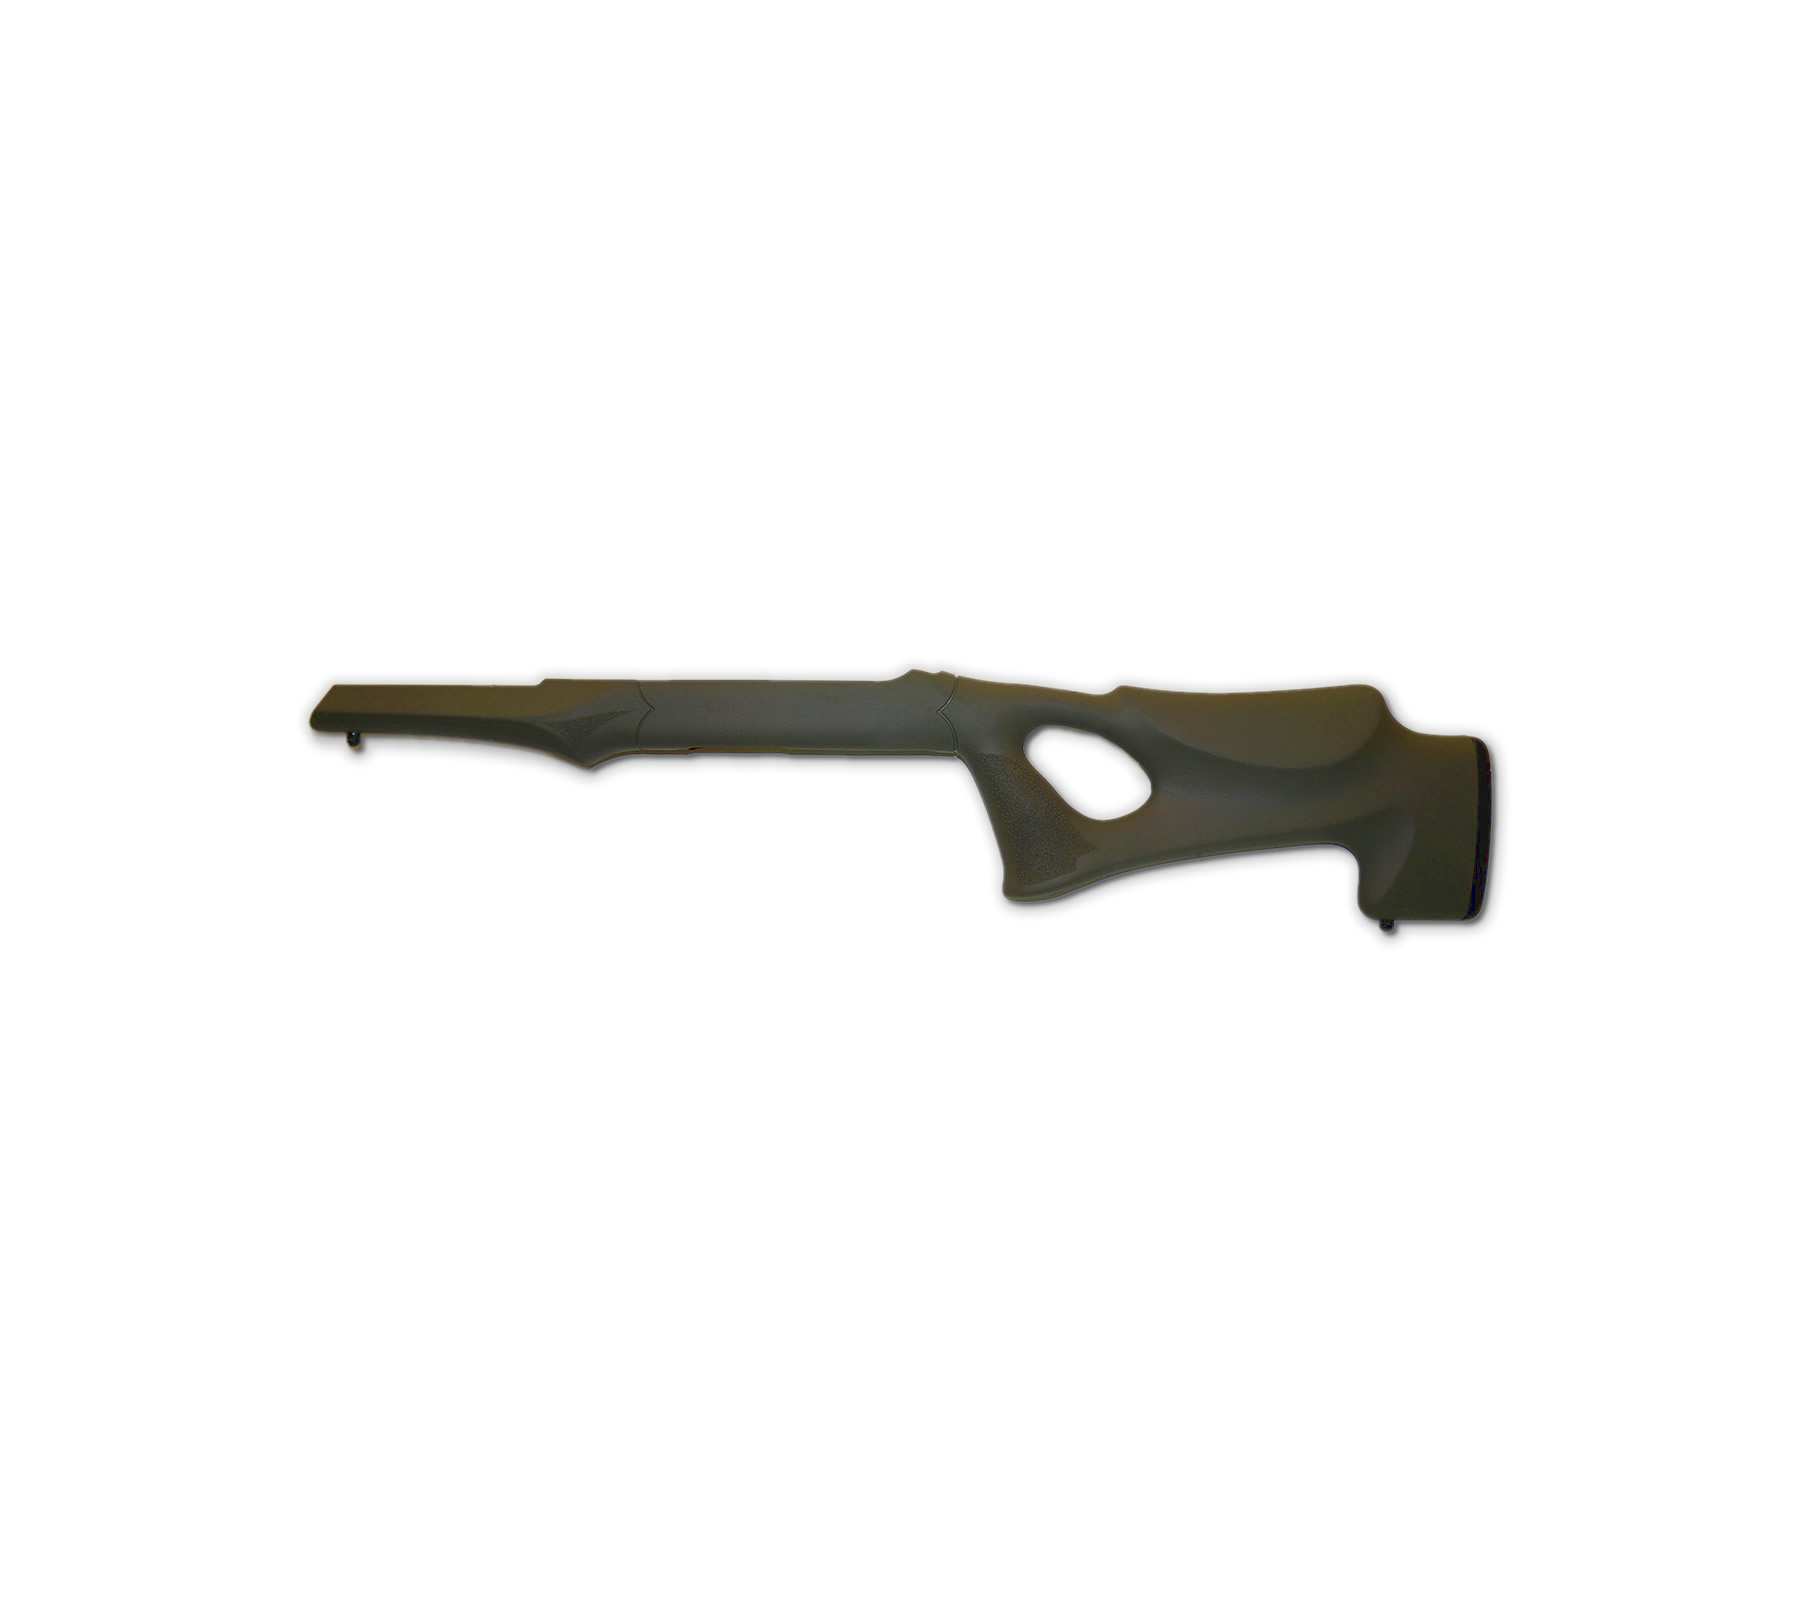 Hogue 10-22 Tactical Thumbhole Stock .920 Barrel Channel OD Green OverMolded Rubber